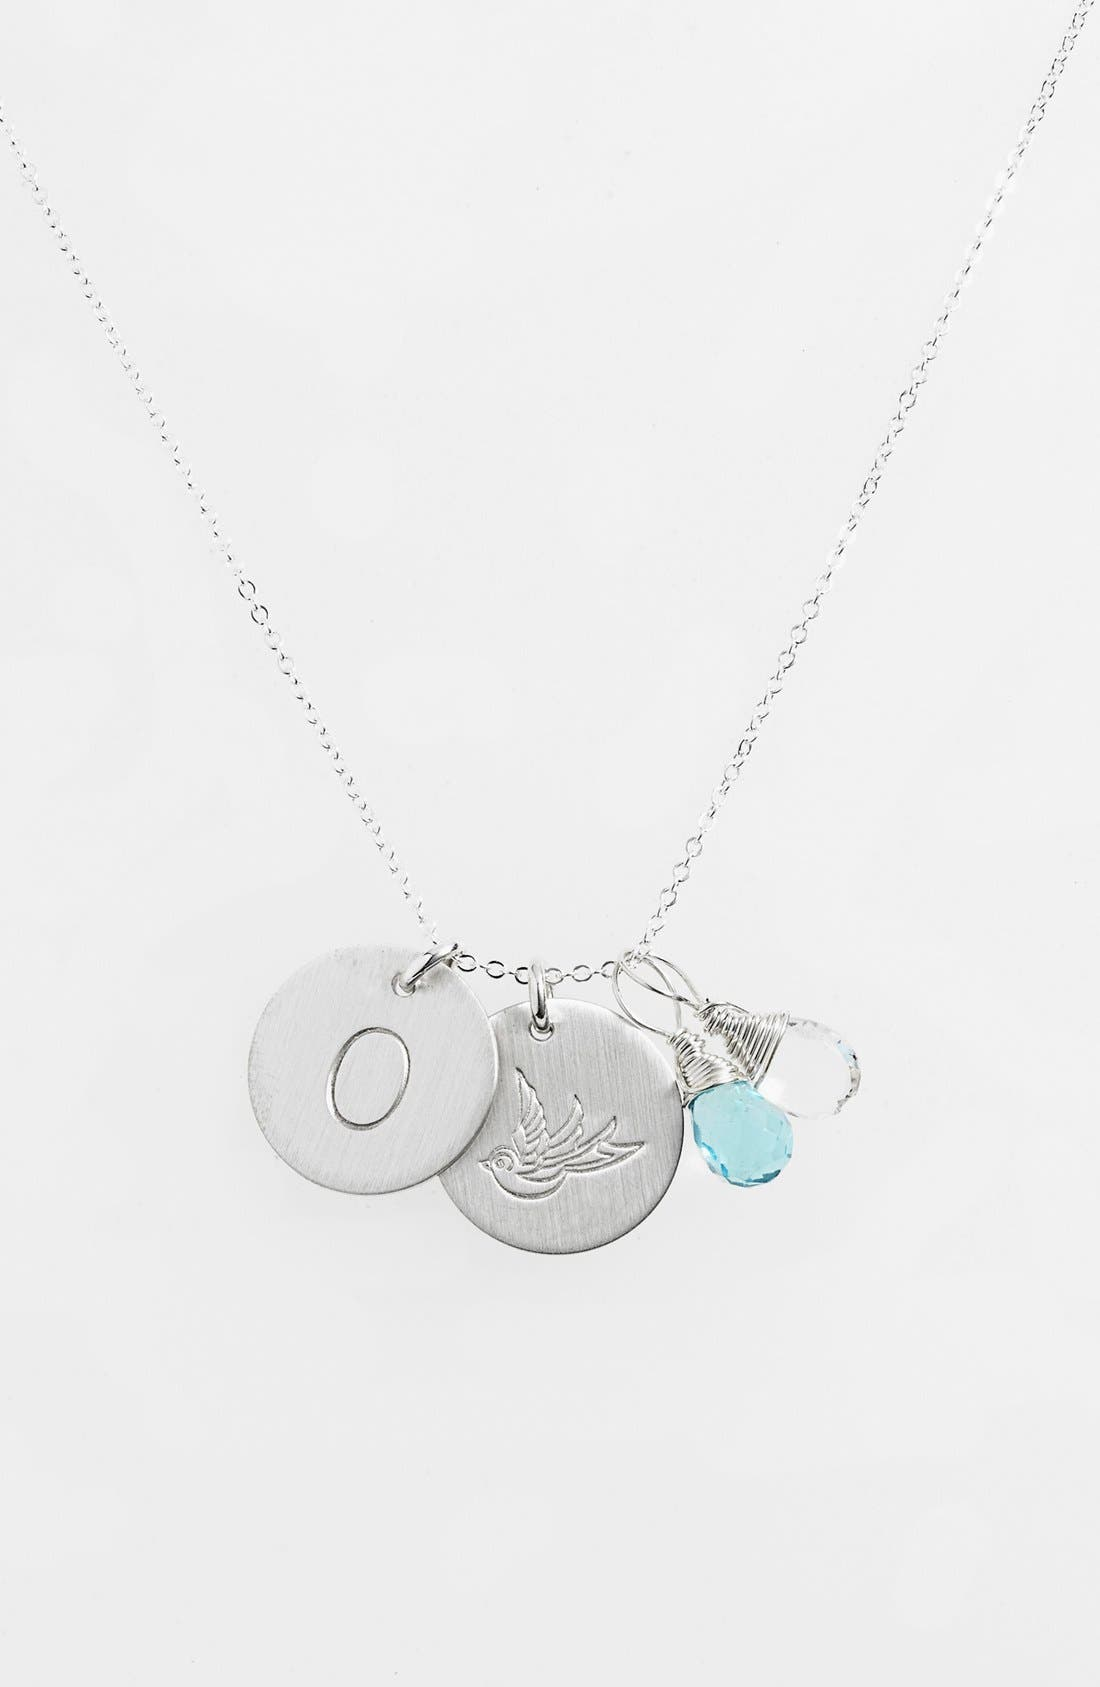 Ocean Blue & Crystal Swallow Sterling Silver Initial Disc Necklace,                         Main,                         color, OCEAN BLUE AND CRYSTAL O